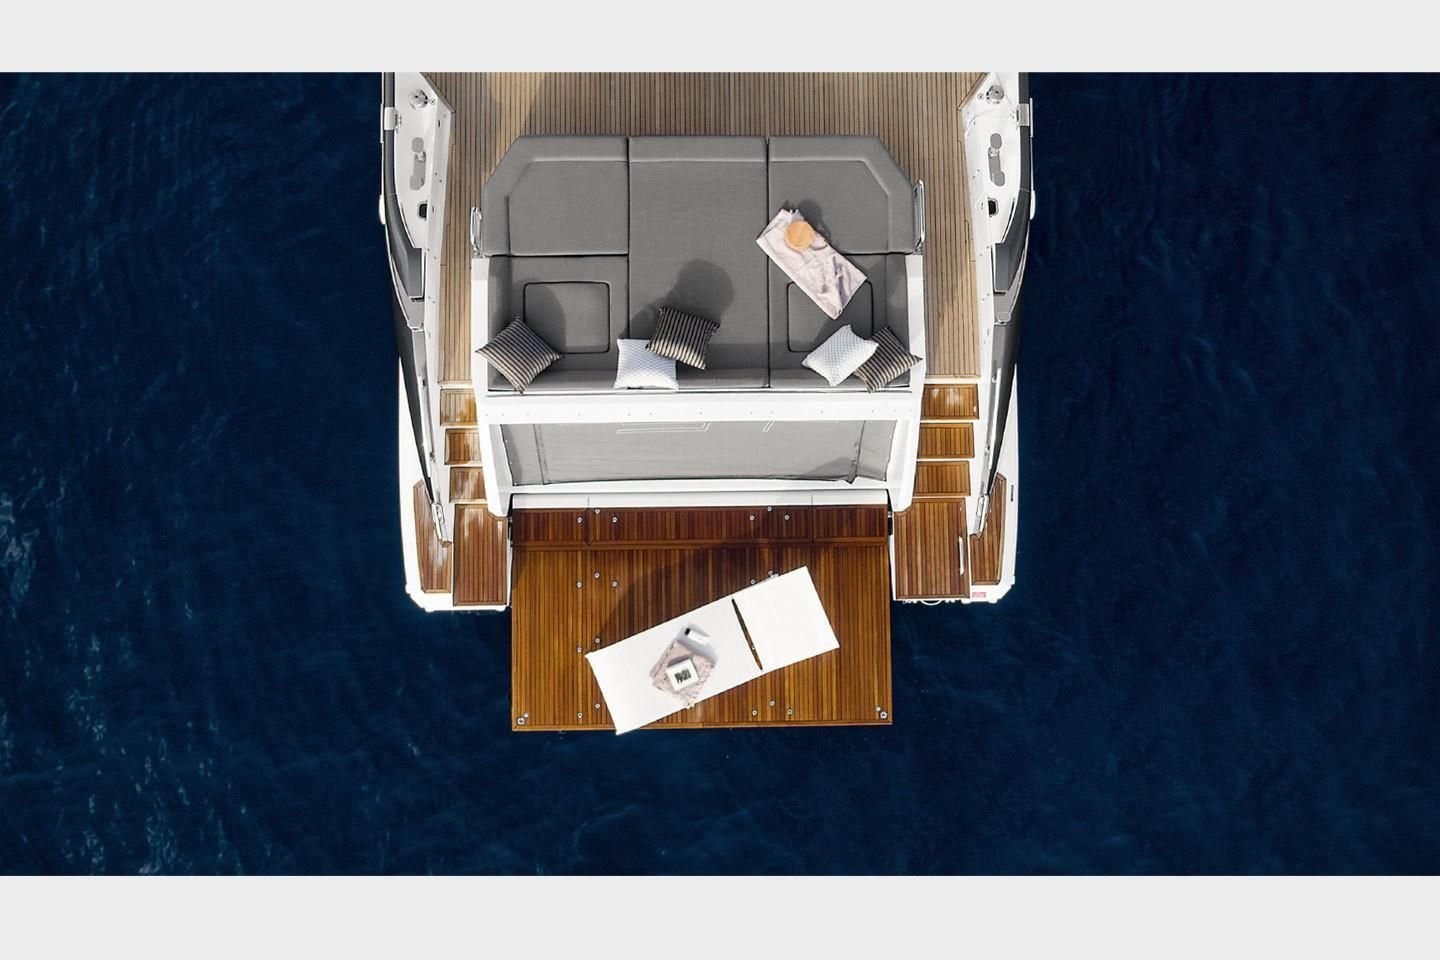 Photo 7 for 2021 Azimut S7